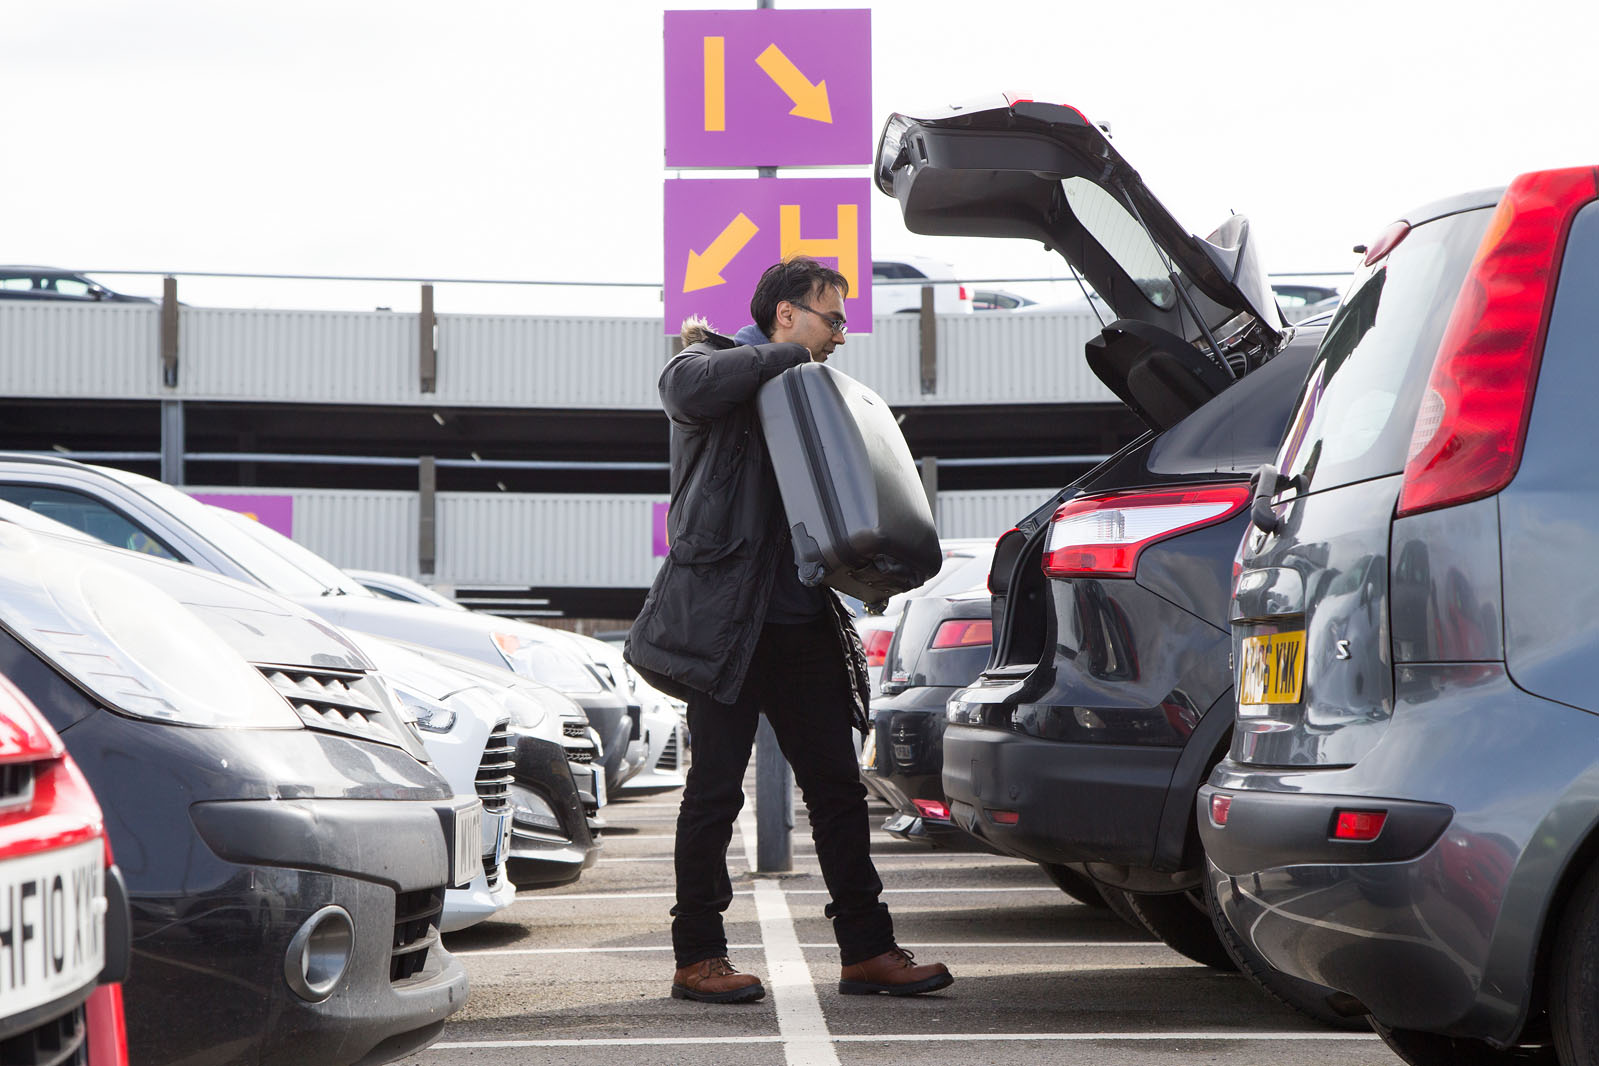 Airport parking: what really happens when you leave your car? | Autocar